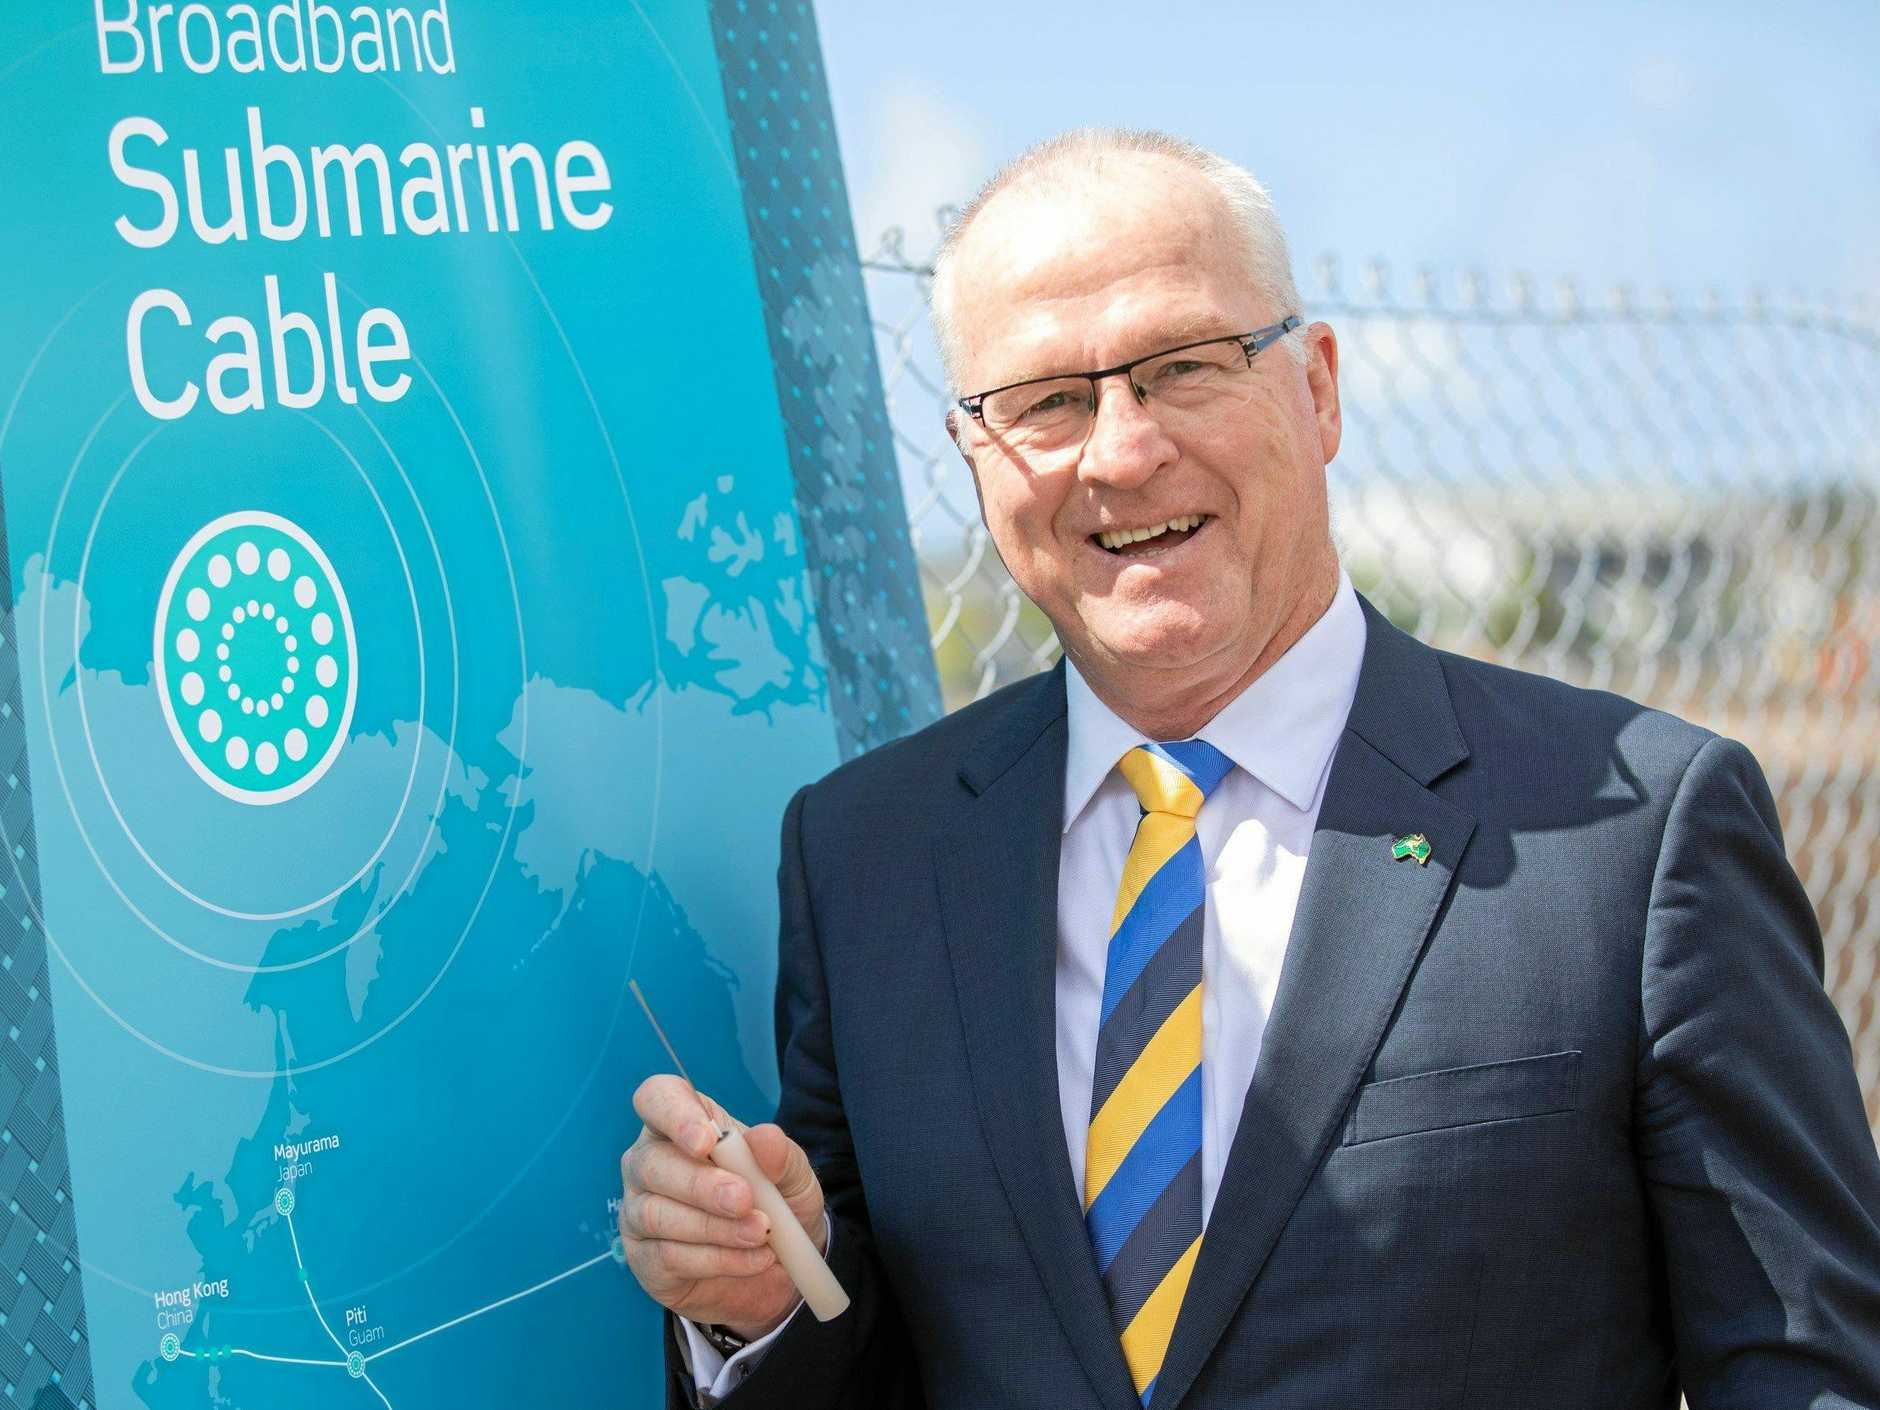 COST TO PAY: A new financial report has found the Sunshine Coast Council's ability to maintain a 'Strong' credit rating was due to on-going growth and a willingness to implement rate rises. Mayor Mark Jamieson sells the latest game-changer project.